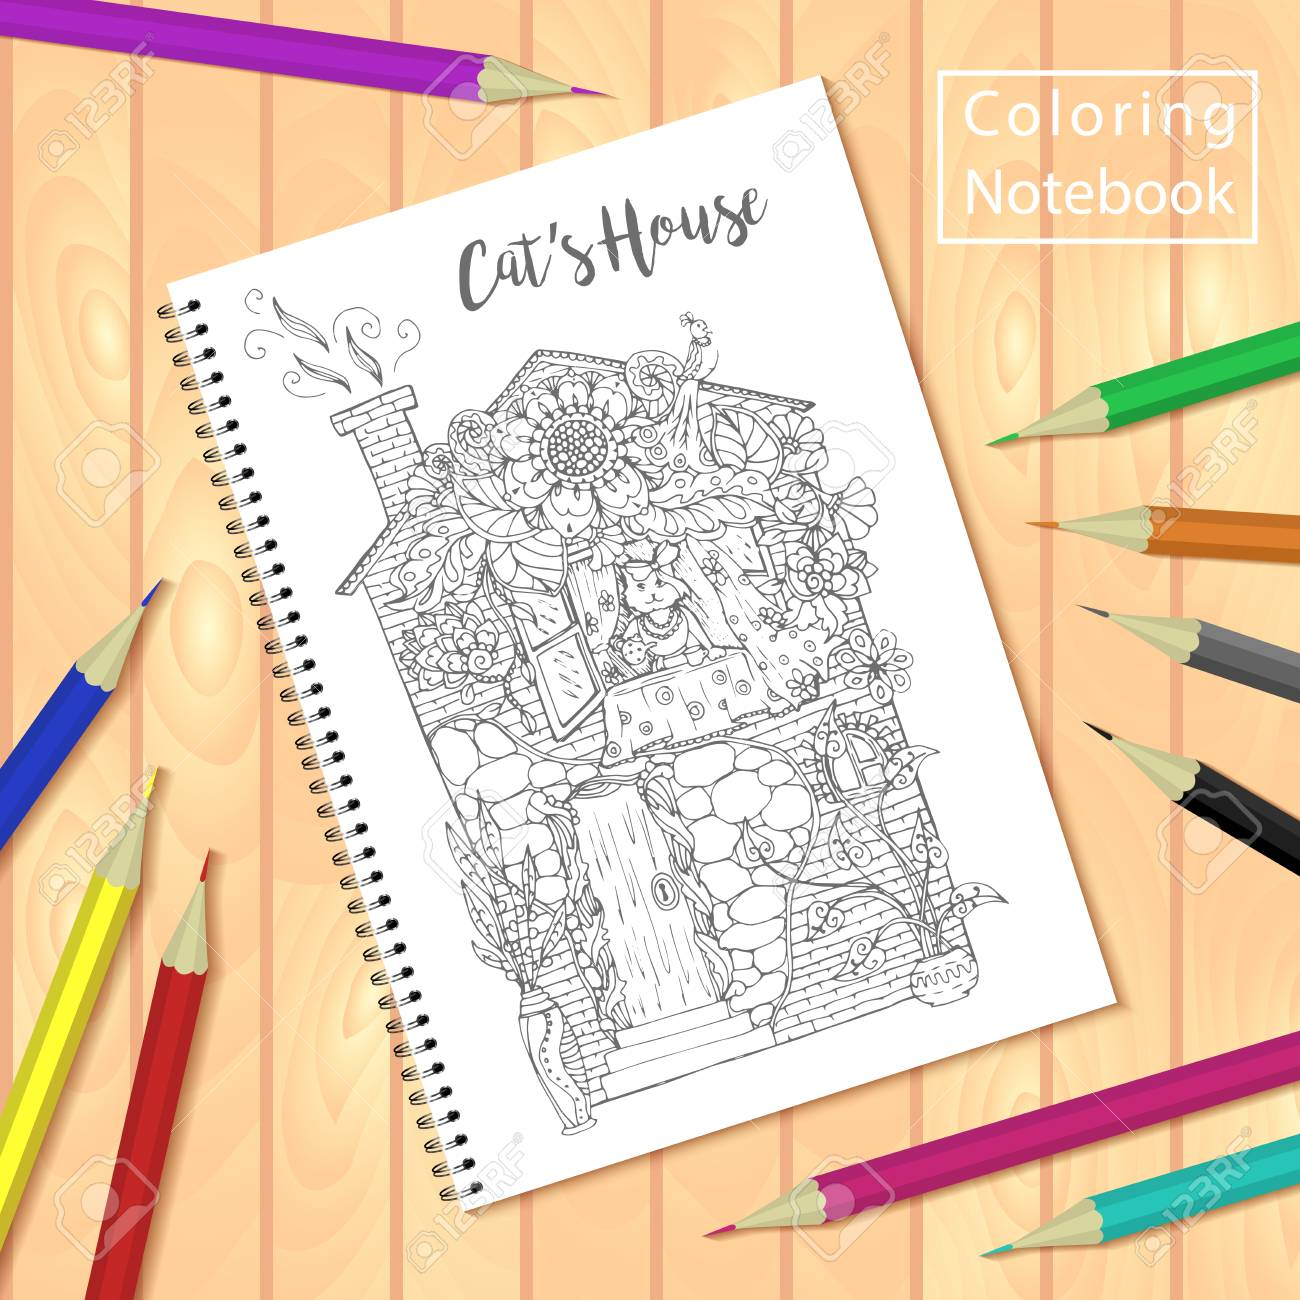 Spiral bound notepad or coloring book with colorful pencils and..